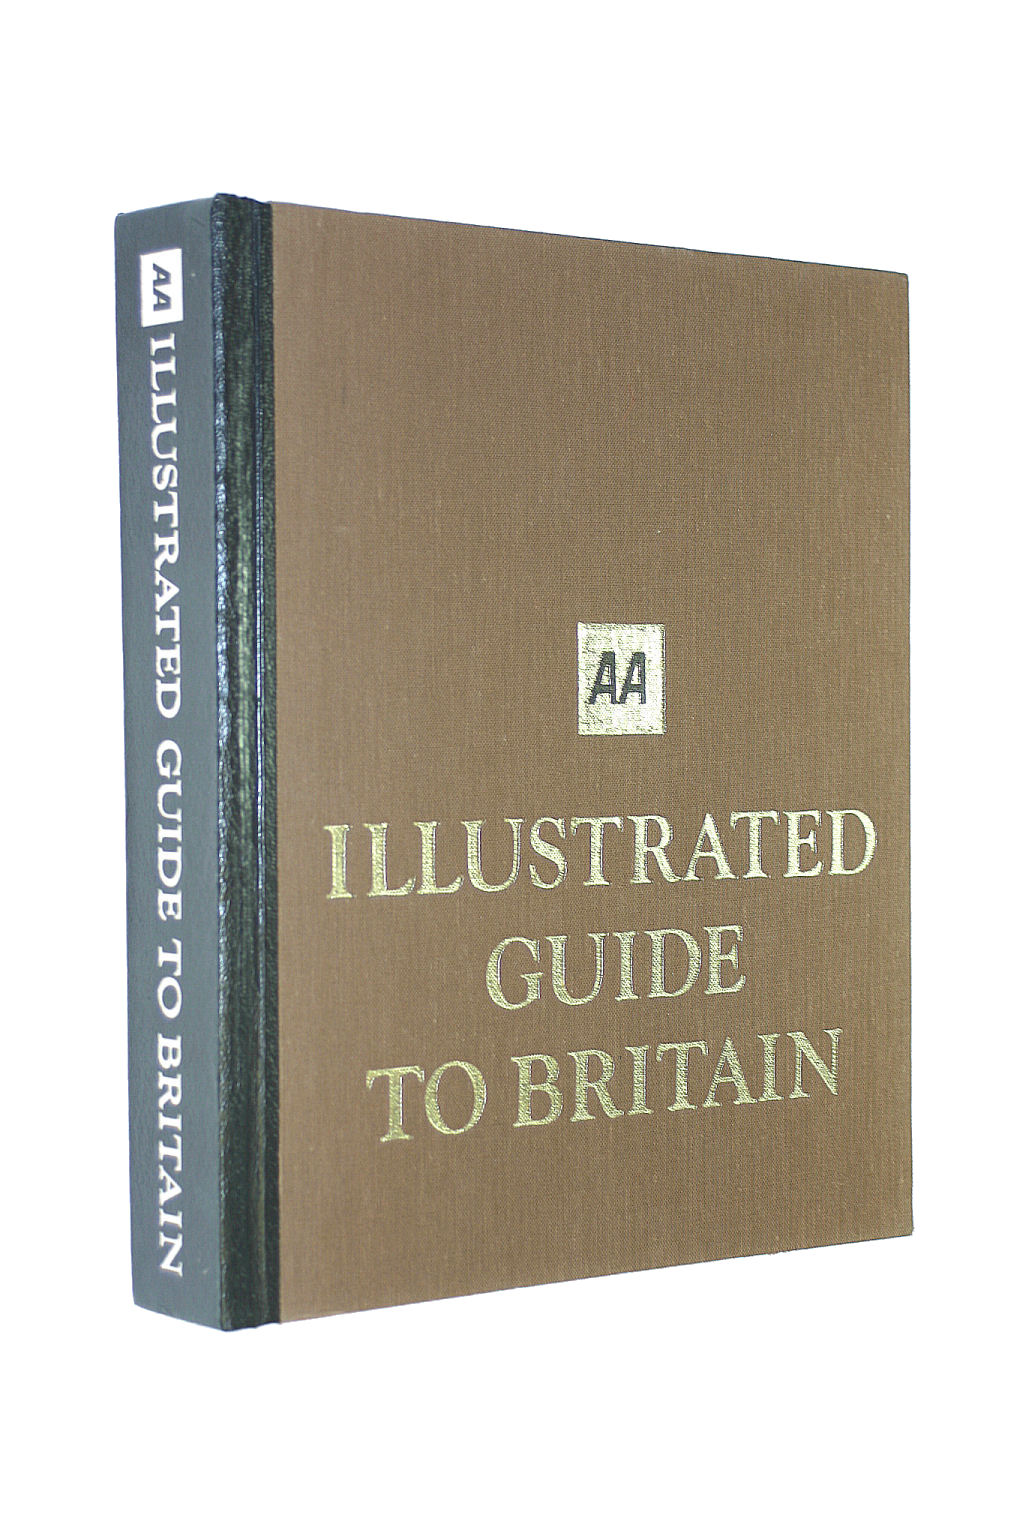 Image for AA Illustrated Guide To Britain